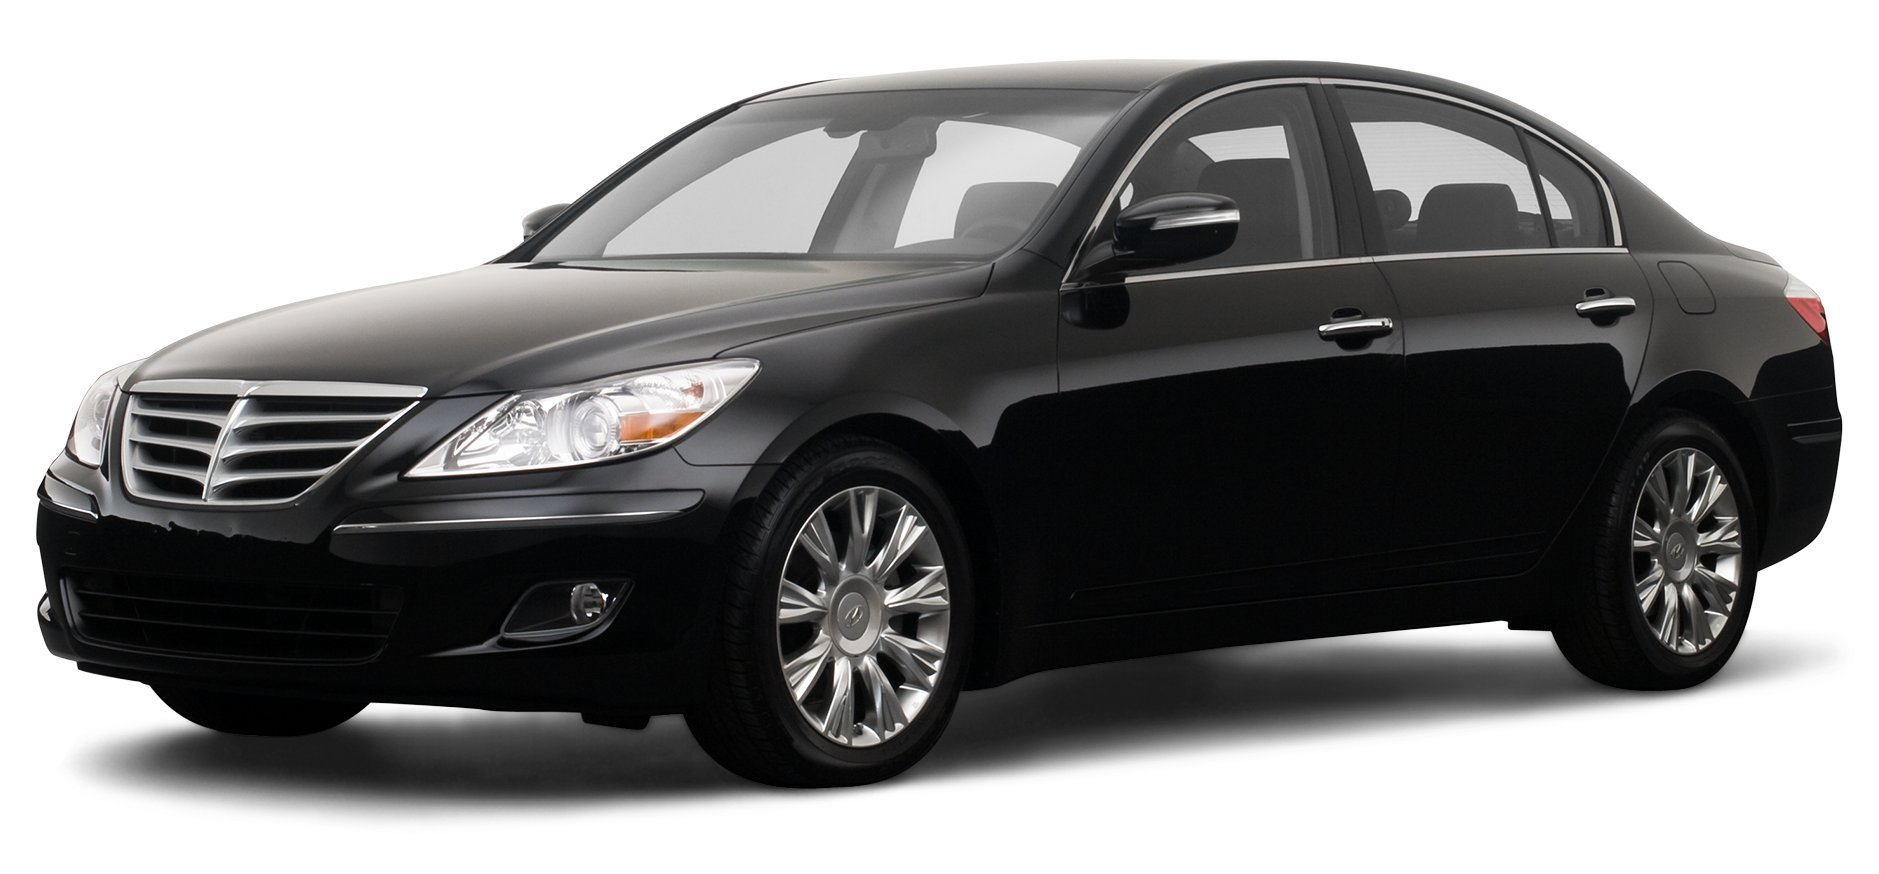 2009 Hyundai Genesis, 4 Door Sedan 3.8L V6 ...